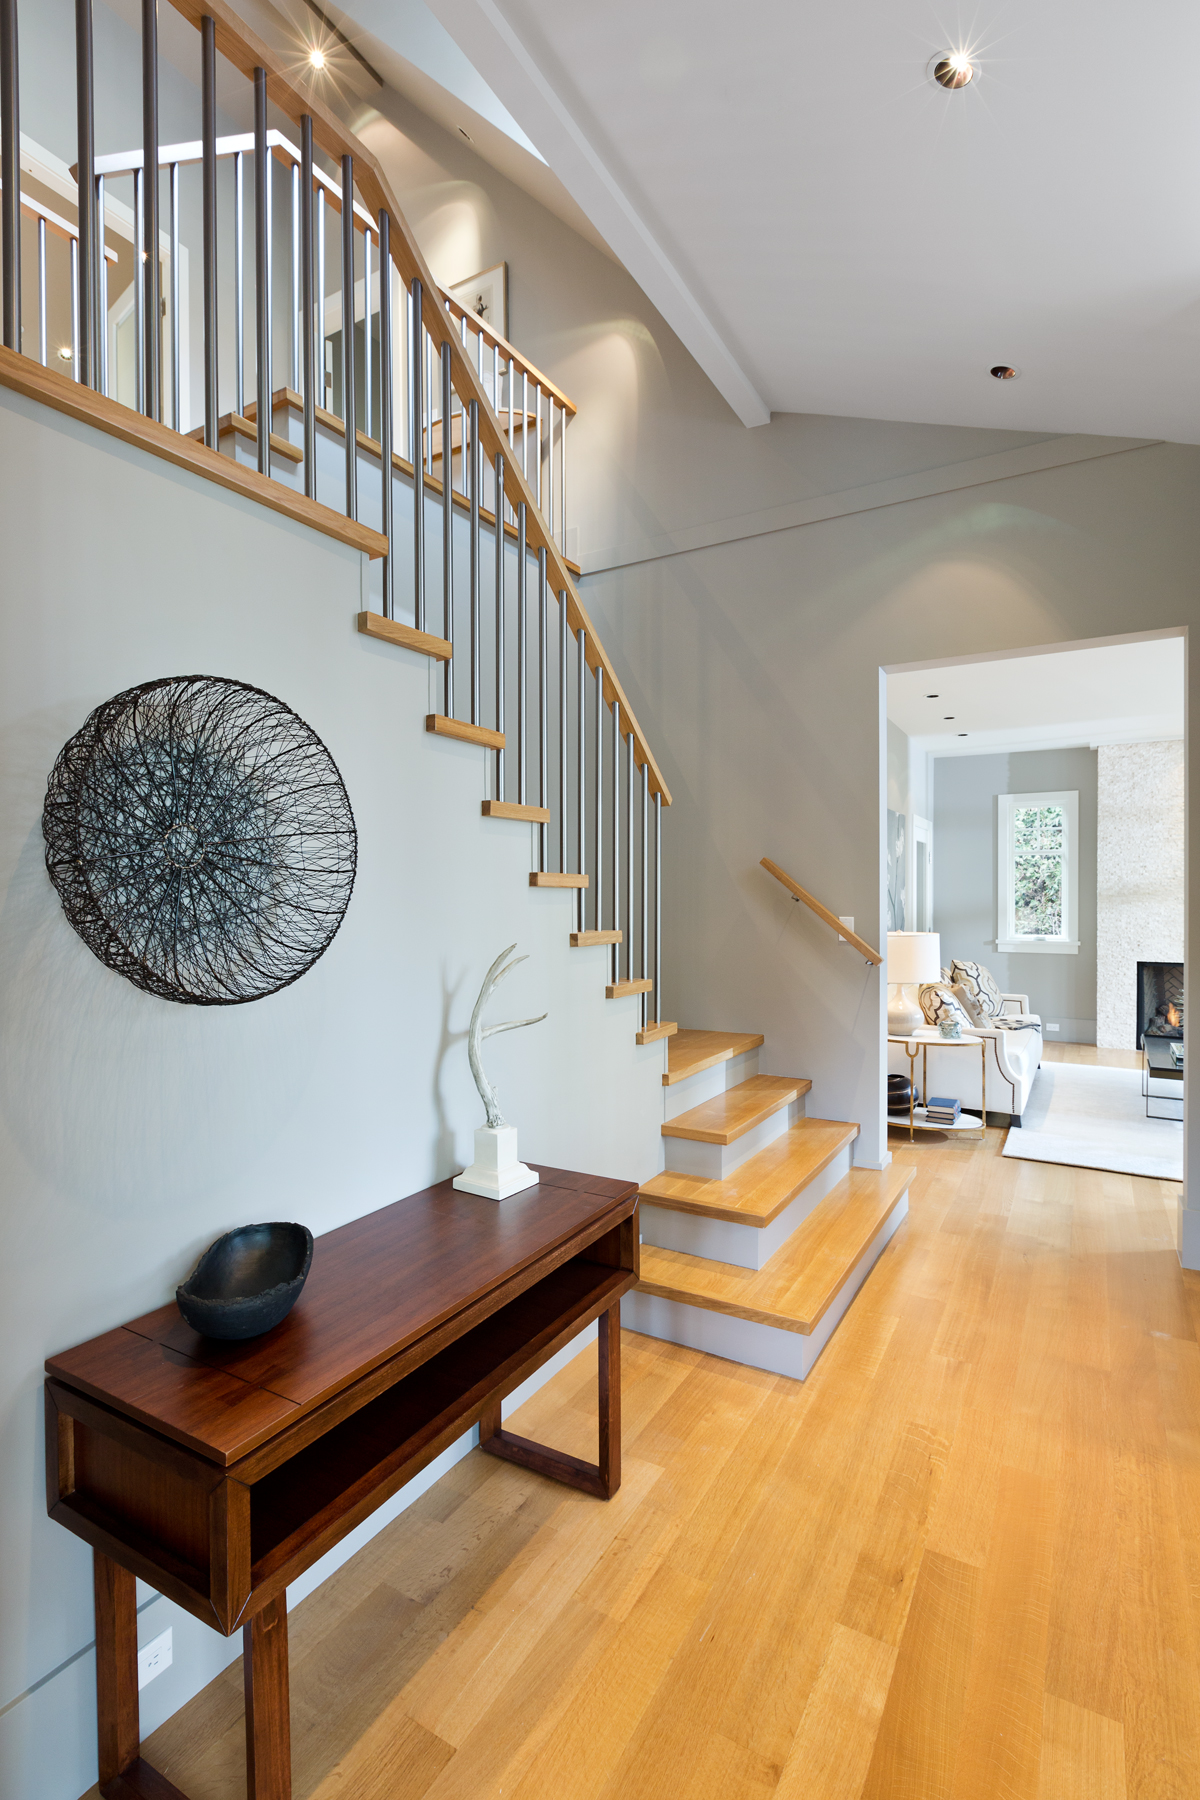 Entrance foyer - Shaughnessy - 1338 West 15th Avenue, Vancouver, BC, Canada